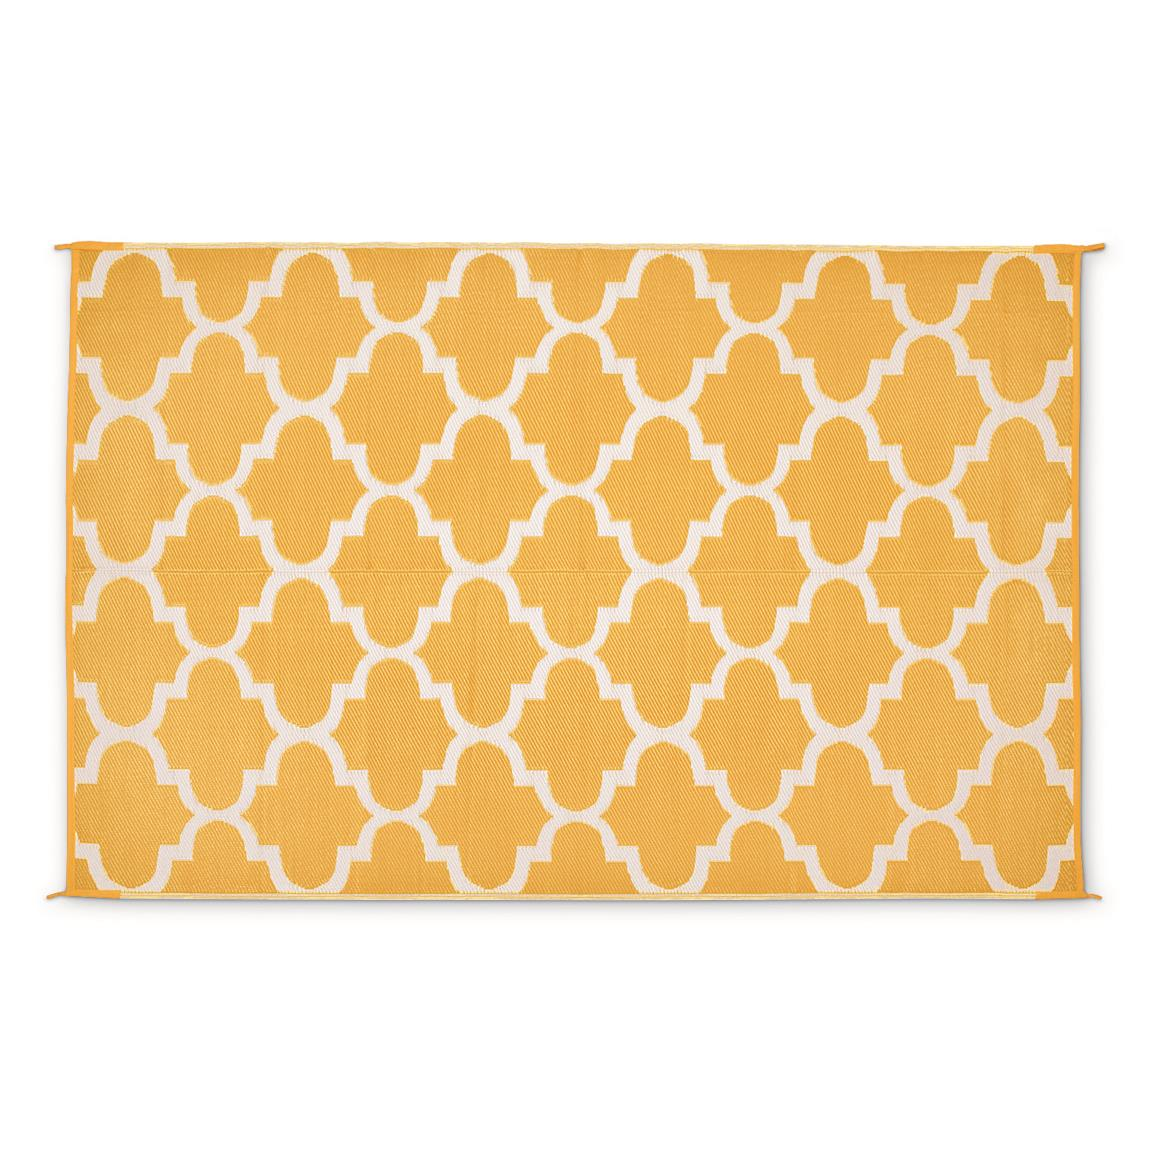 Guide Gear Moroccan Outdoor Rug, Mustard/white